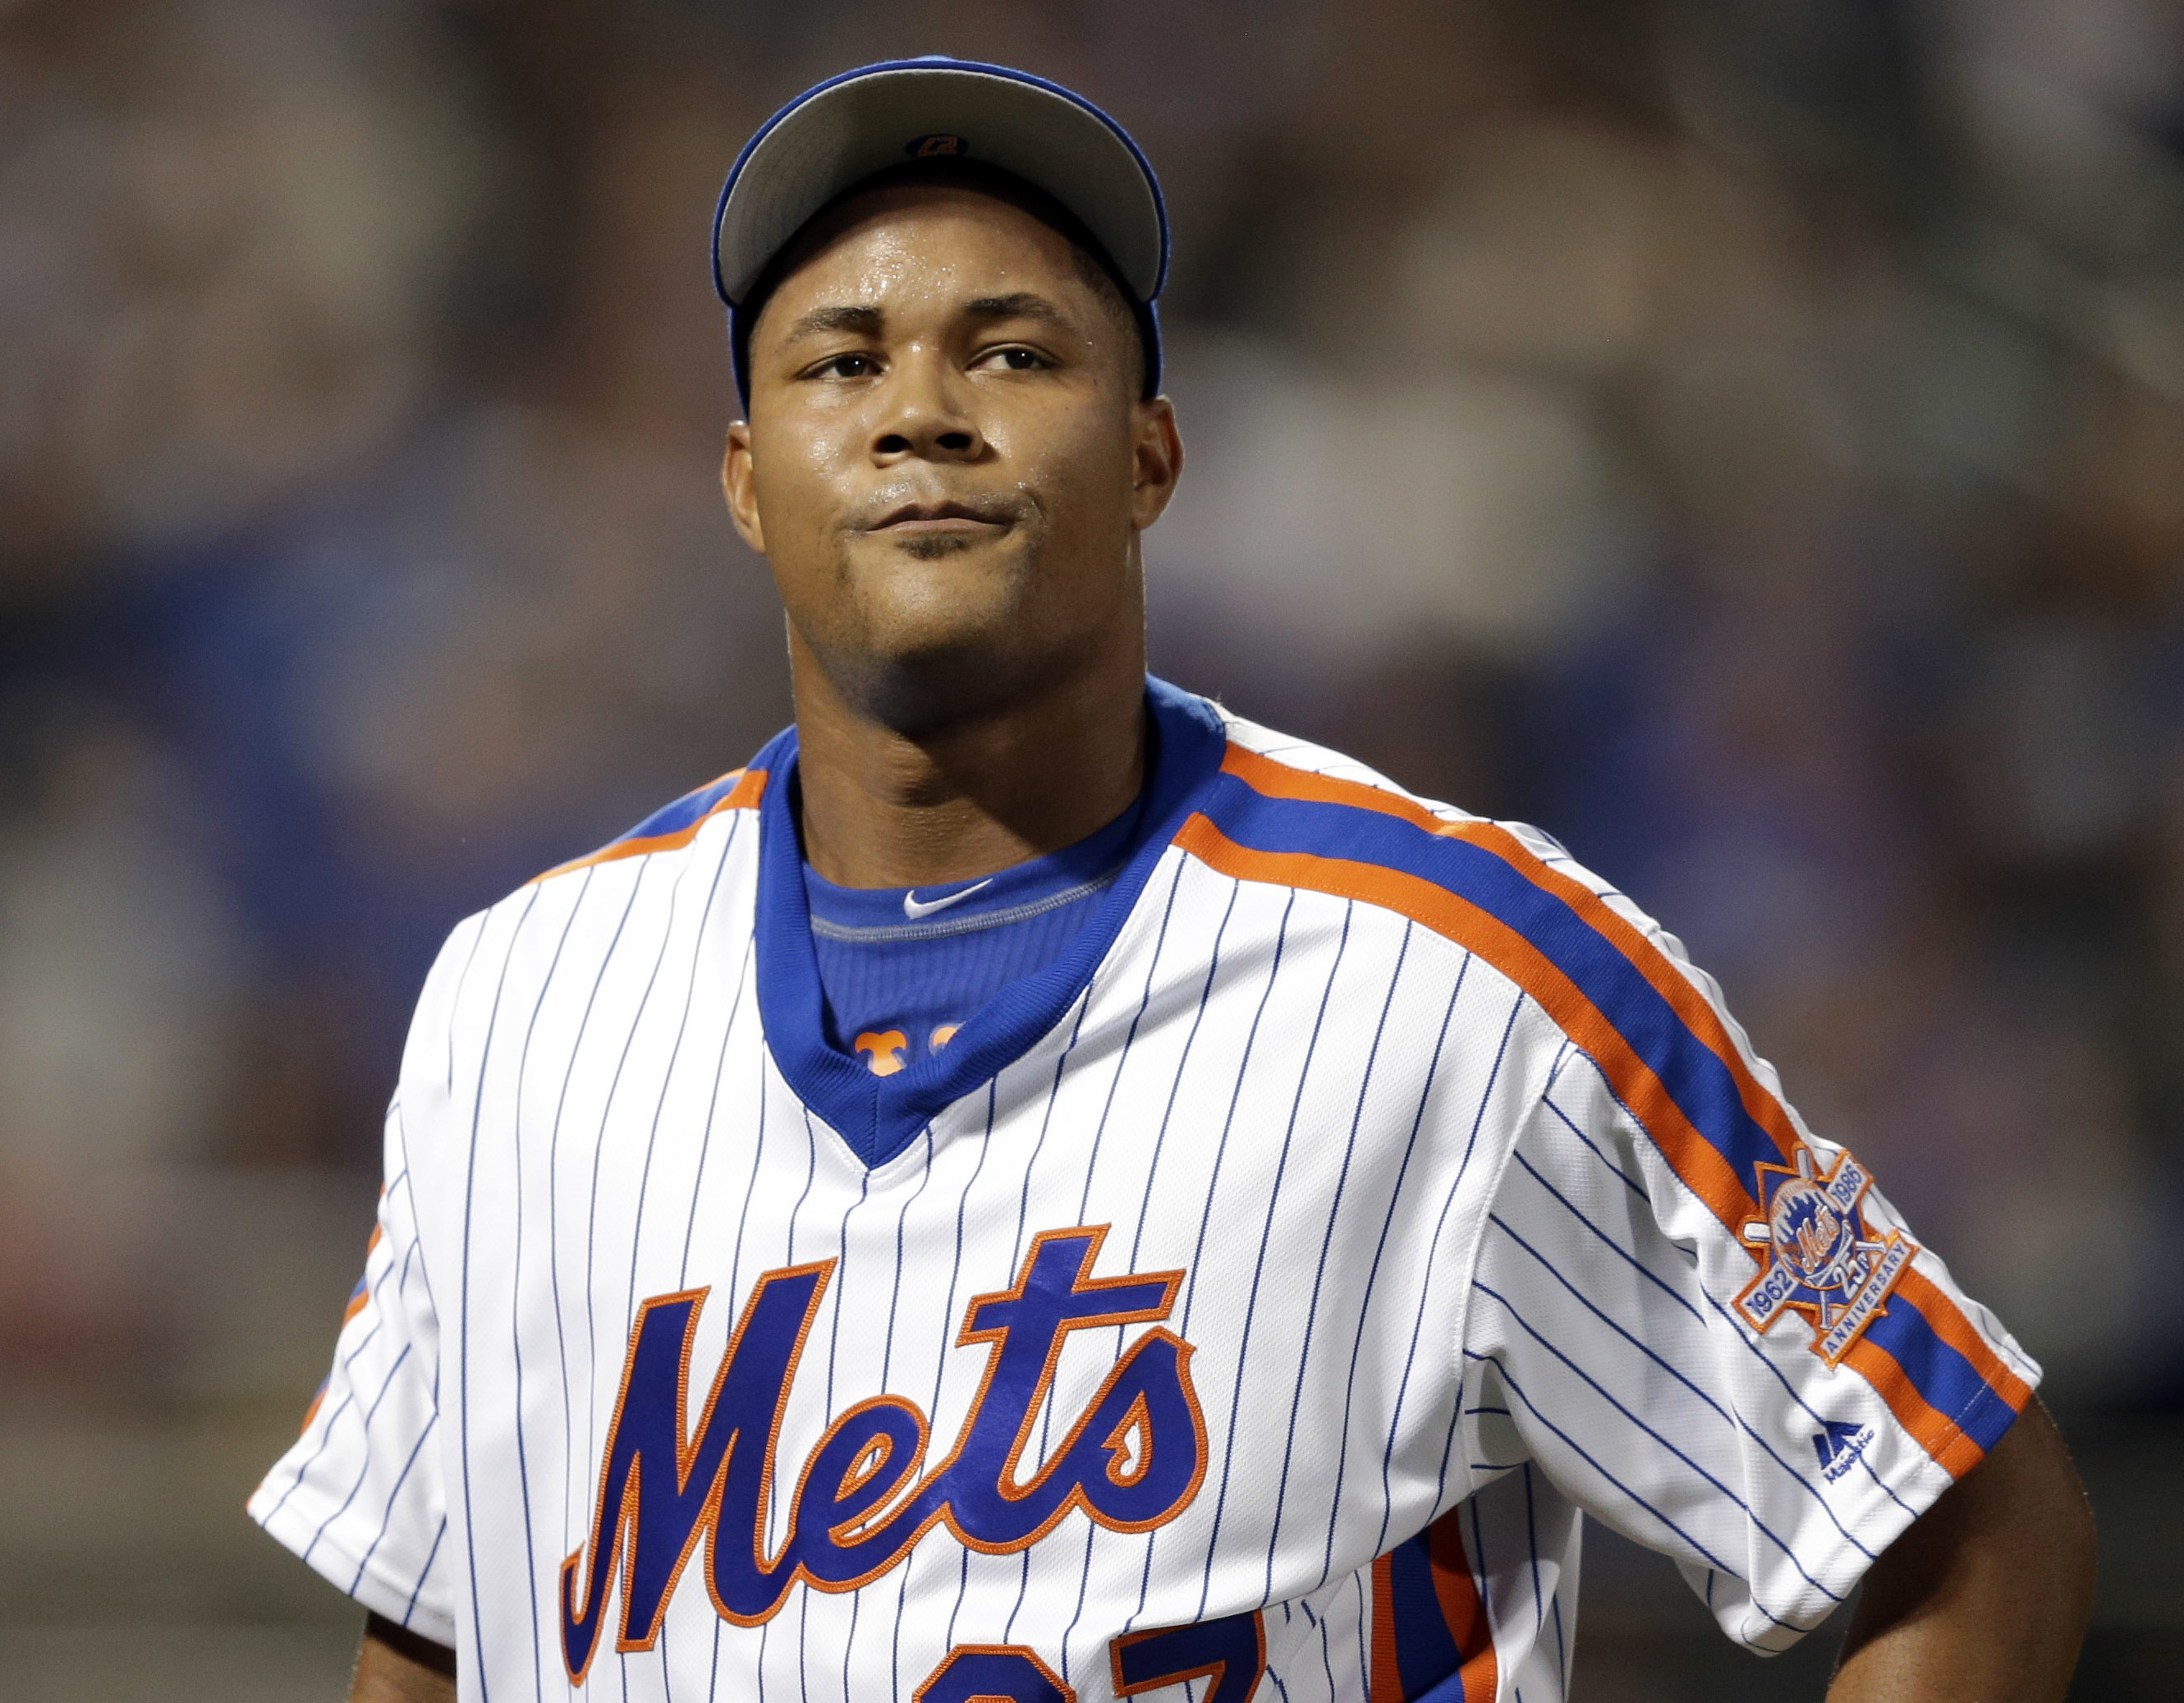 FILE - In this May 29, 2016, file photo, New York Mets relief pitcher Jeurys Familia reacts as walks off the field during the ninth inning of the baseball game against the Los Angeles Dodgers at Citi Field in New York. The wife of New York Mets pitcher Je